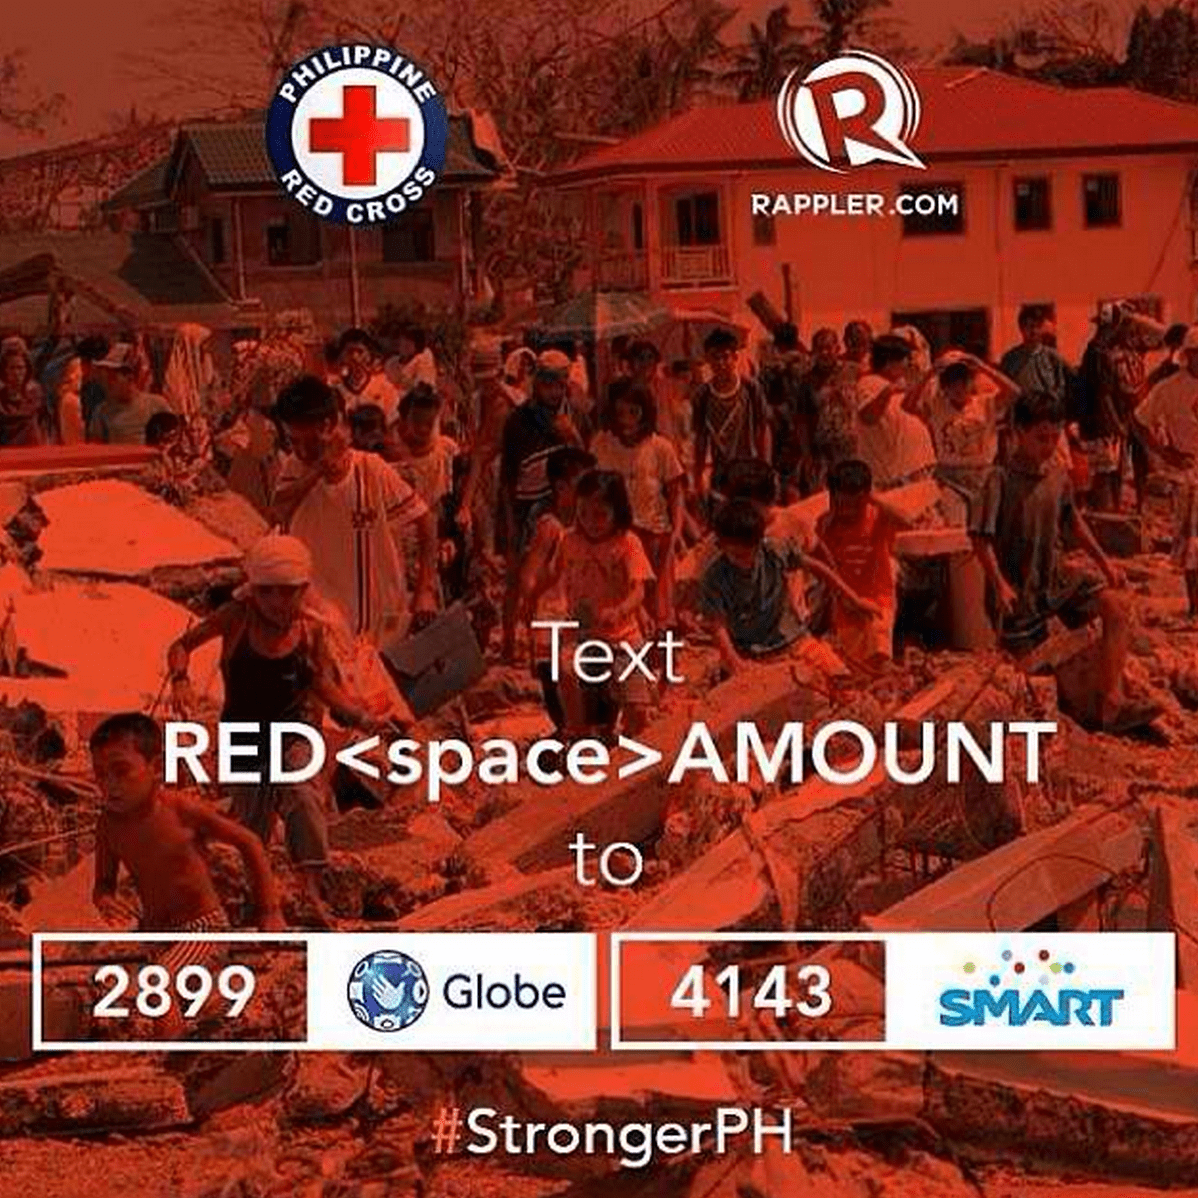 Redcross Rappler Yolanda